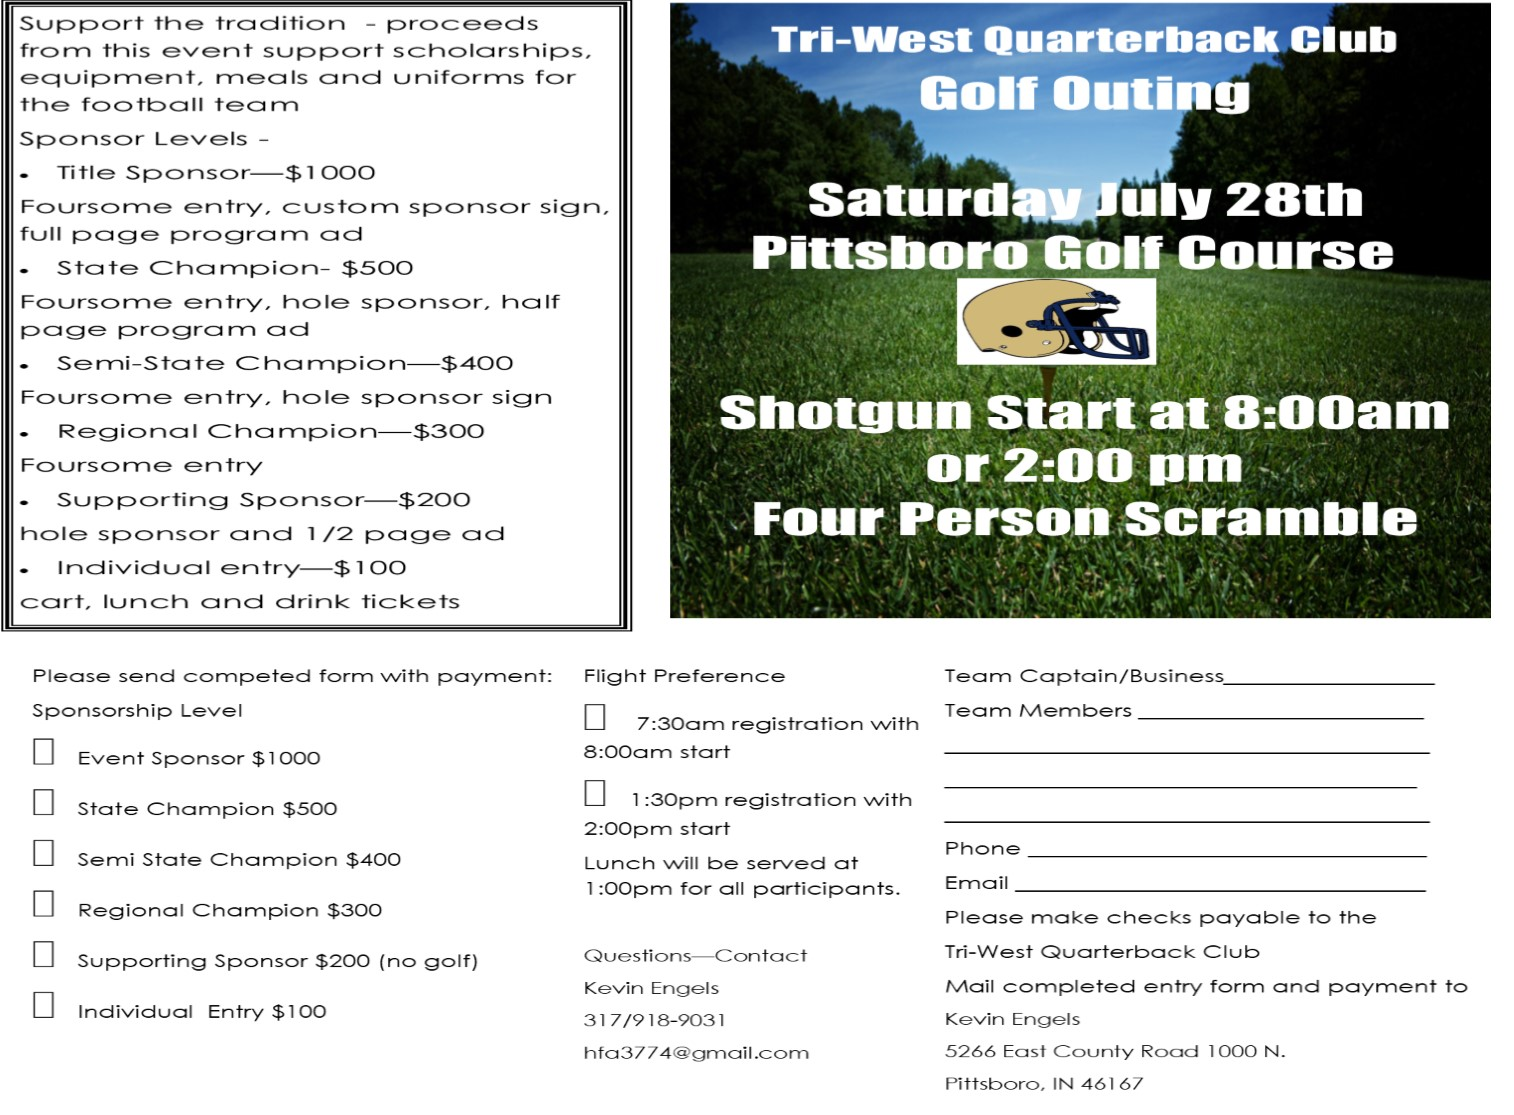 Tri-West Quarterback Club Golf Outing–July 28th